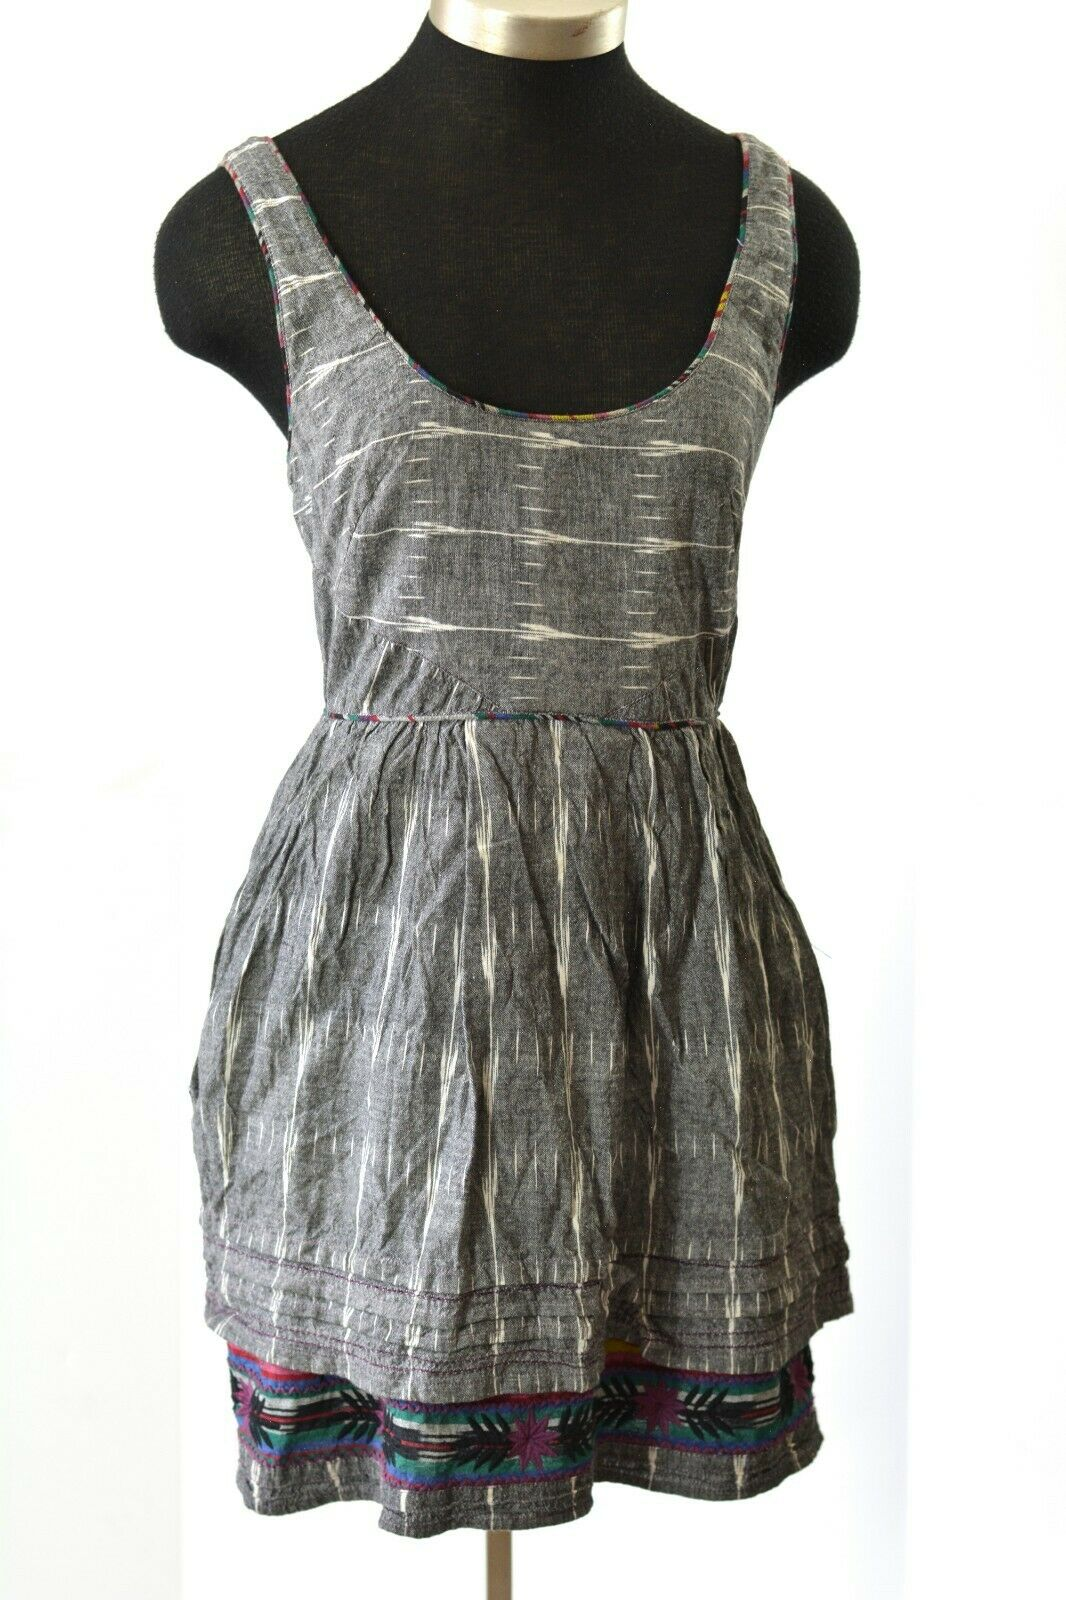 Free People Dress New Romantics Weather Vane Ikat Sundress Size 4 Small